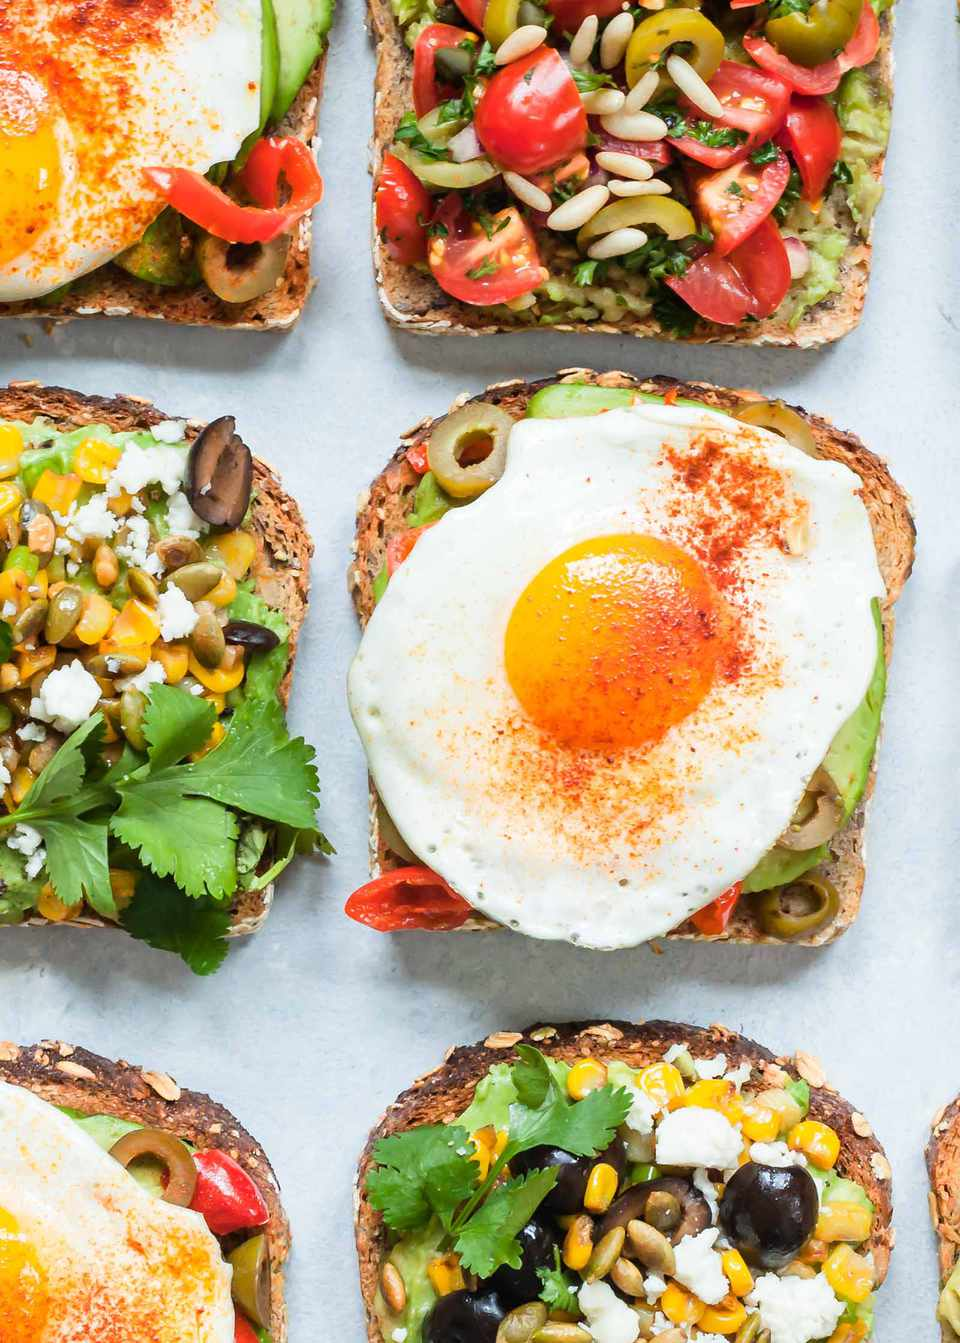 Avocado Toast with Fried Egg, Olives, and Paprika